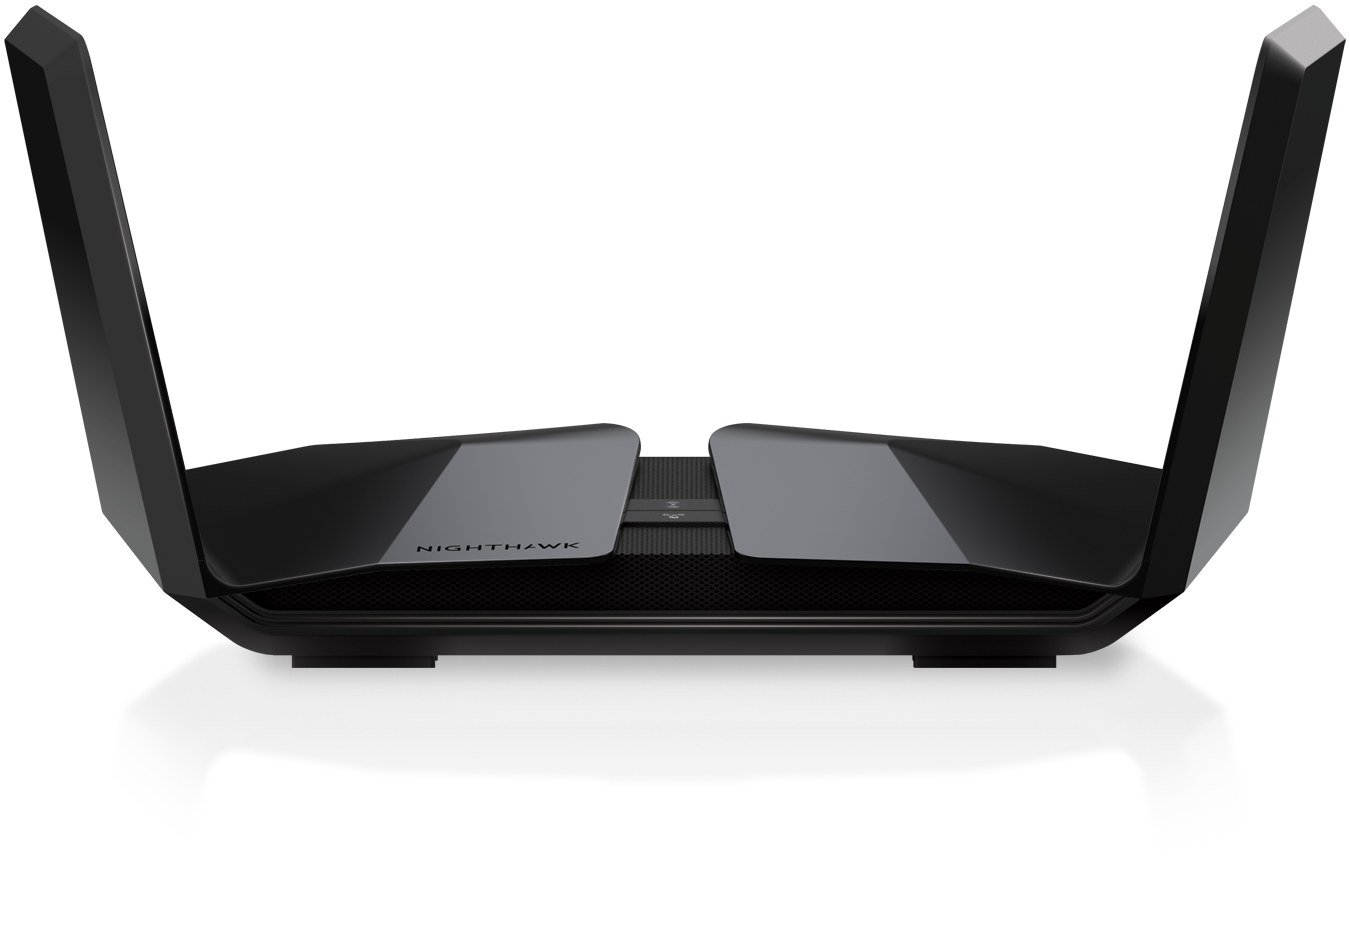 Nighthawk Tri-Band AX12 12-Stream Wi-Fi 6 Router